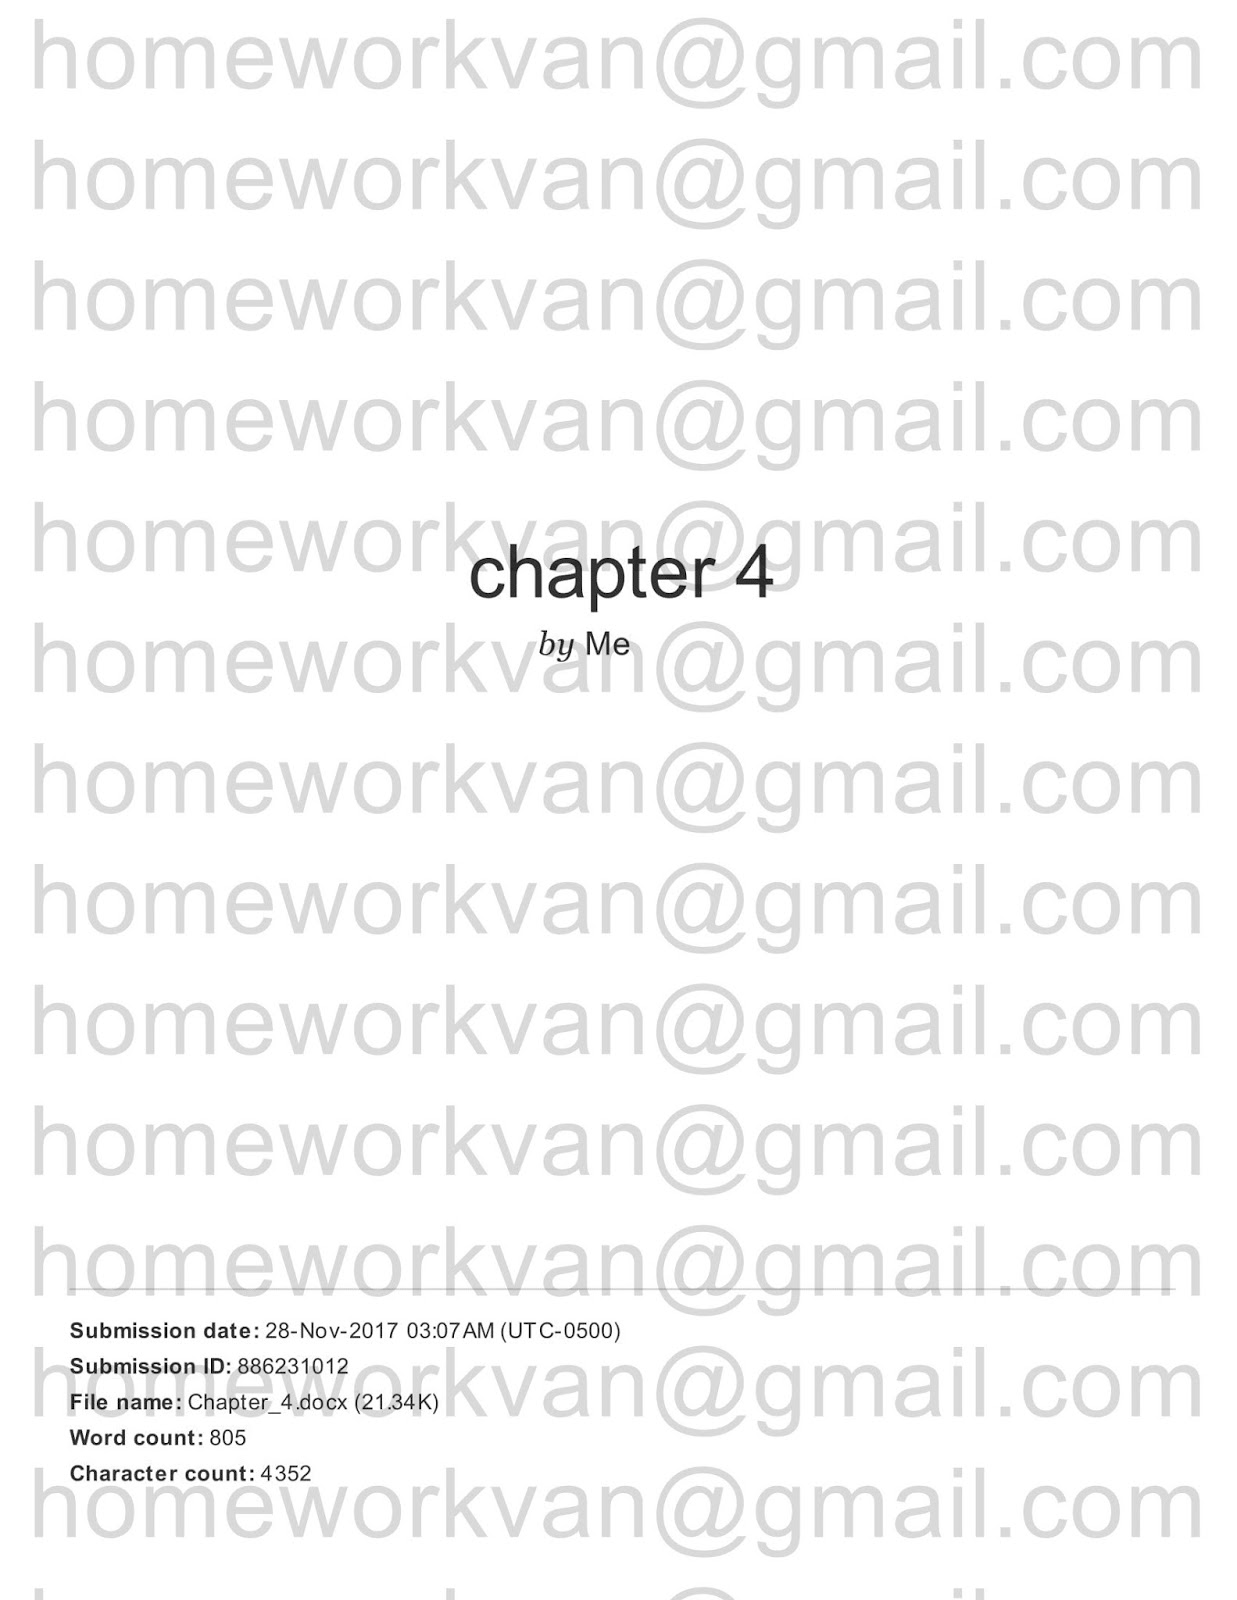 Essay On Holocaust The Following Is Plagiarism Report For Academic Essay Tutorial  Chapter   General Essay Outline  By Homeworkvan Gay Marriage Essay Topics also Noise Pollution Essay Homeworkvan Official Blog Academic Essay Tutorial  Chapter   Argument Essay Samples